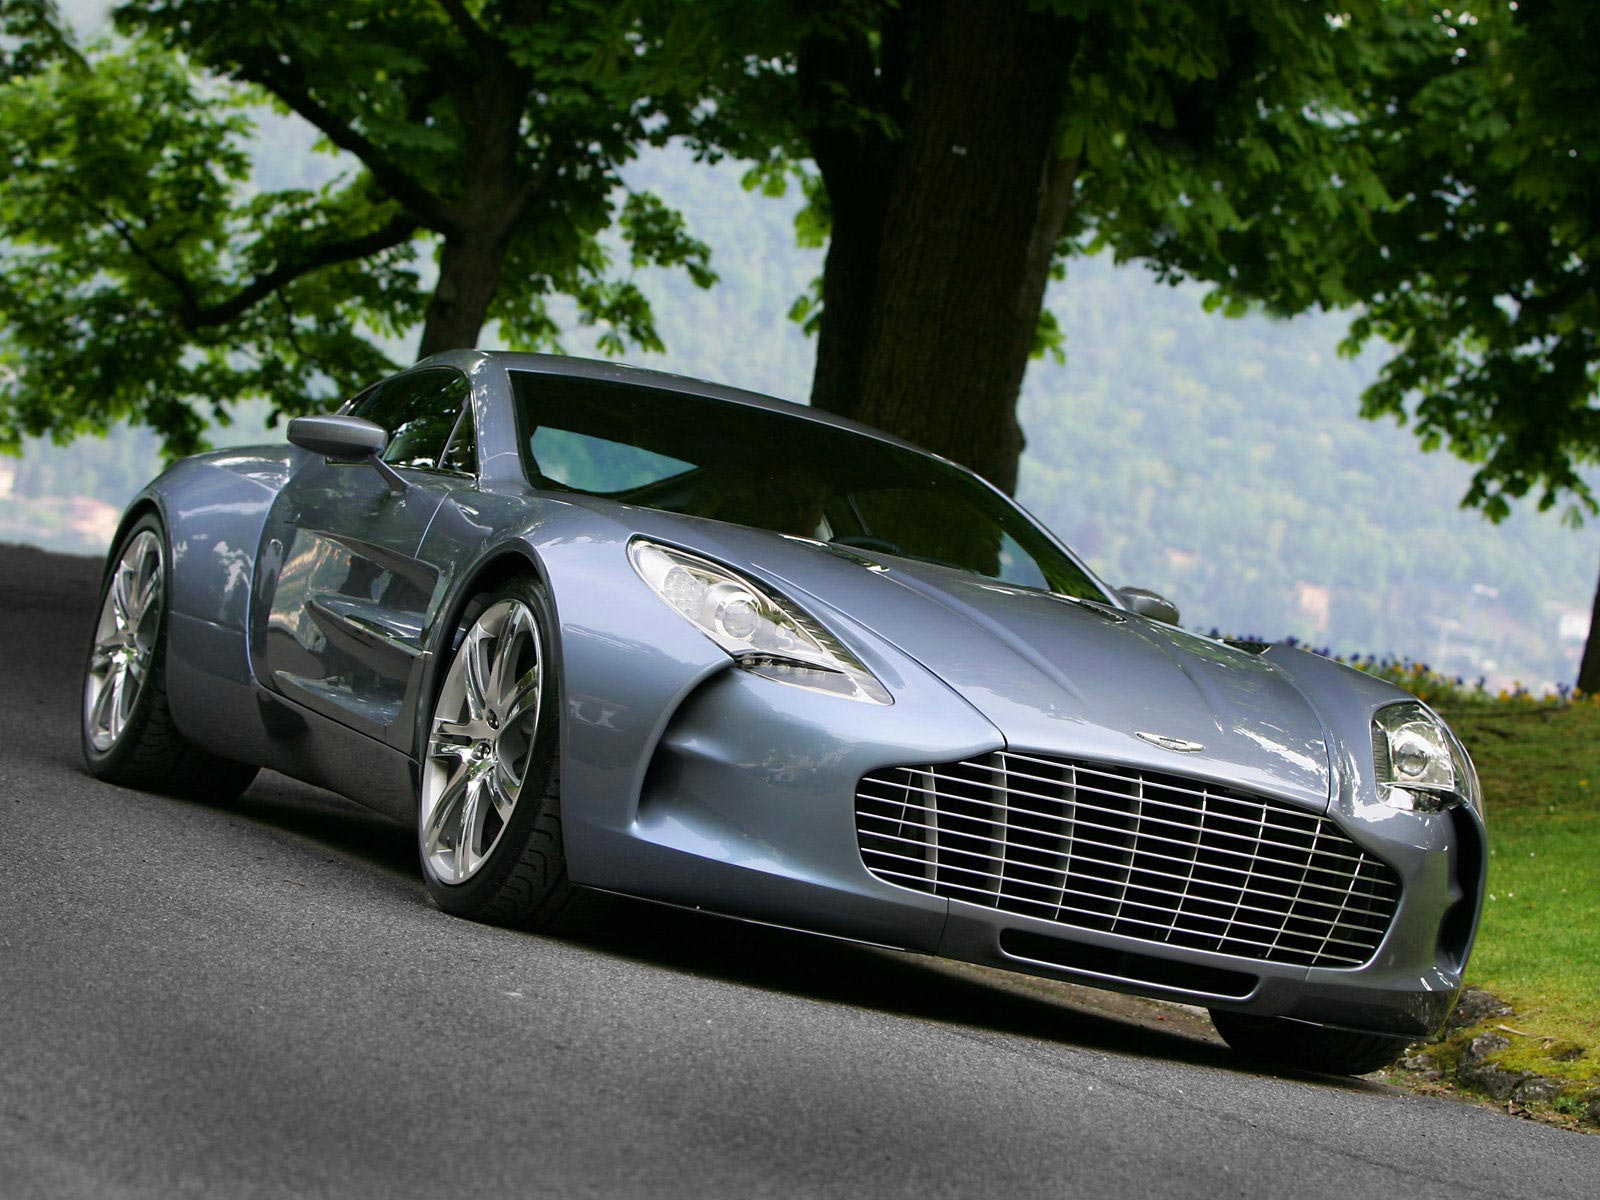 Aston Martin Plans to Create Customized Cars for Their Opulent Owners